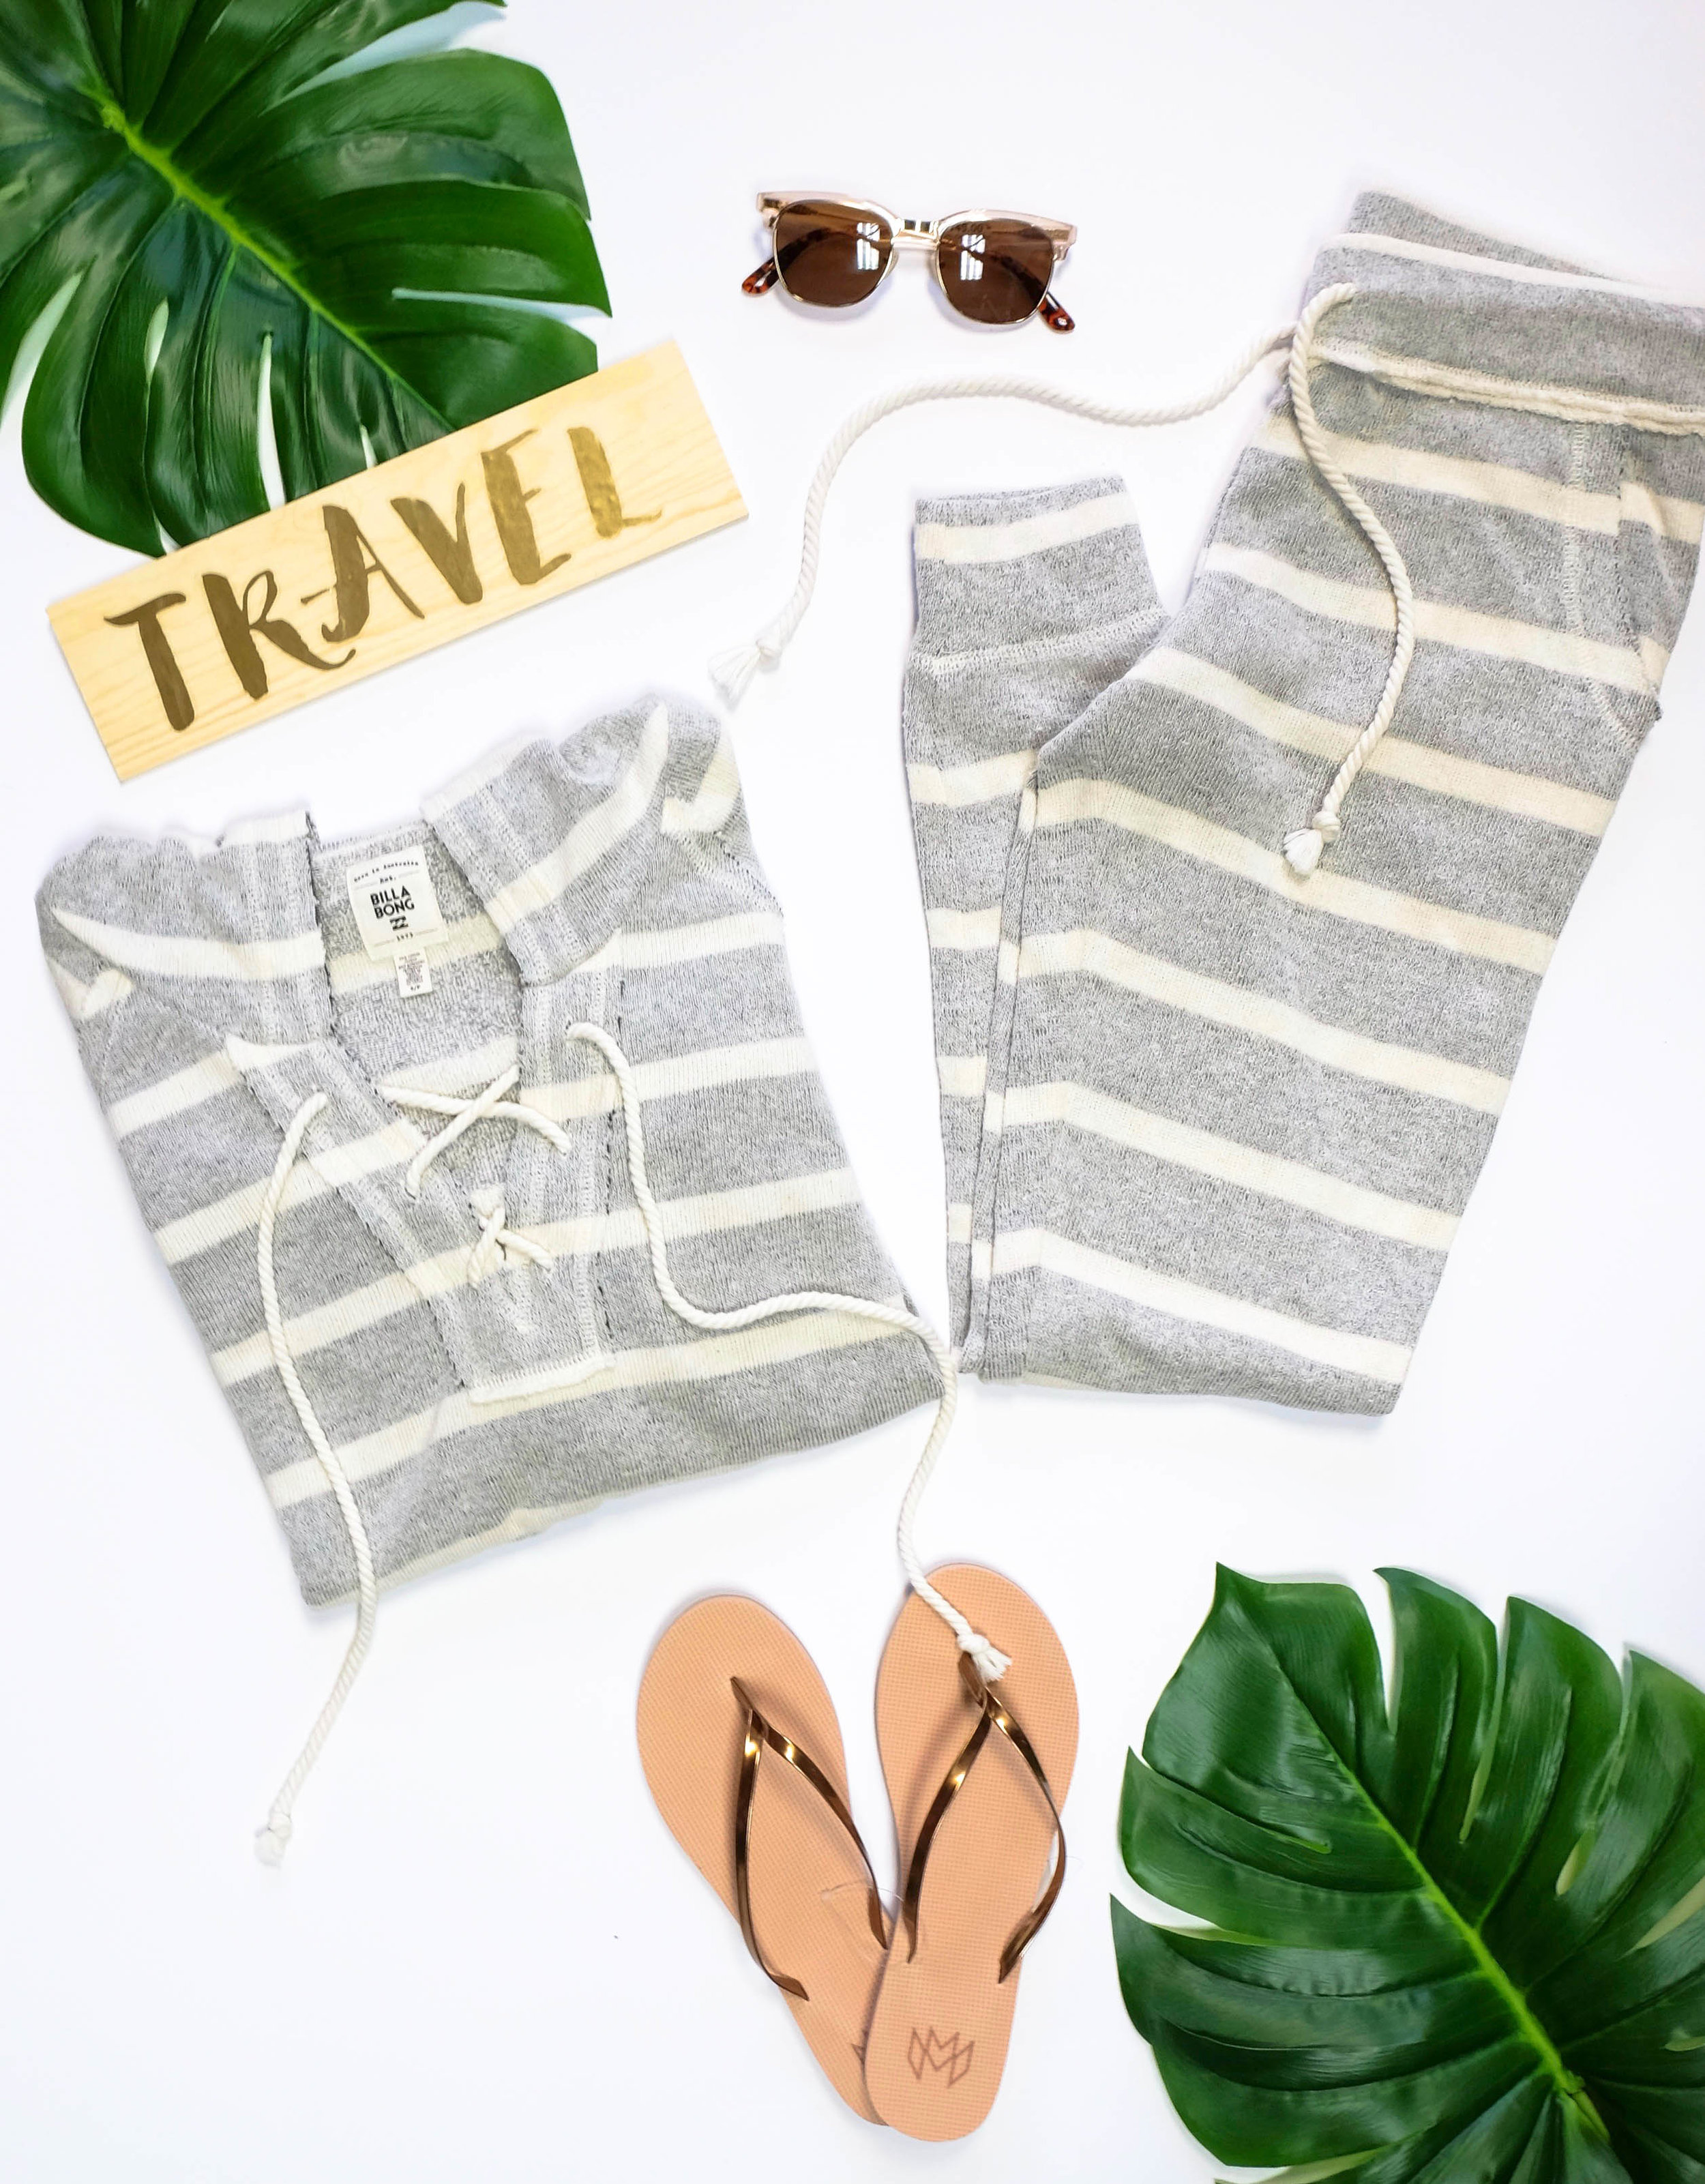 """For our ladies, a comfy day-of-travel outfit is necessary without looking like you just rolled out of bed for your 5 AM flight (even if you did!). Pairing your favorite sweatshirt and sweatpants doesn't always have to be your """"day off look"""", especially with this cute Billabong set, an effortless way to look presentable. Now for shoes… I would personally wear some easy sandals to slip on and off because who wants to spend any more extra time in airport security?! Plus, I like to take my kicks off on the plane and can save myself the embarrassment of stinky shoes. (Quick Tip: Keep a pair of Stance socks in your carry on!) And don't worry, we added some Toms sunglasses to hide those bags under your eyes. ;)     Pictured:  Billabong Sweatshirt  Billabong Sweats  Toms Sunglasses  Malvados Flip-Flips      Now for the part I know everyone has been dreading since Thanksgiving.  Swimsuit Season .Trust me, the last thing I want to do is put a swimsuit on my terrifyingly white body too. But we have so many cute suits in store that its hard to not want to buy them! My current swimsuit obsession is this fun, printed Maaji two-piece. Also, they're swimwear is reversible so it's basically getting two swimsuits in one! Which means you won't have to pack as much and your suitcase will have more room for shoes :) Other than a swimsuit being a beach/pool day essential having a cute towel will make getting that sun burn a little cuter. You cant't go wrong with this Volcom 'Hypnotize' Round Towel, its even big enough for two (AKA another reason to pack more shoes)! Last but not least, don't forget to support your favorite local boutique and pick up a cute and functional Vanilla Mizu water bottle to keep your choice of beverage cold all day! Post a pic and tag us on Instagram of where you and your Vanilla bottle are vacationing to this Spring!"""